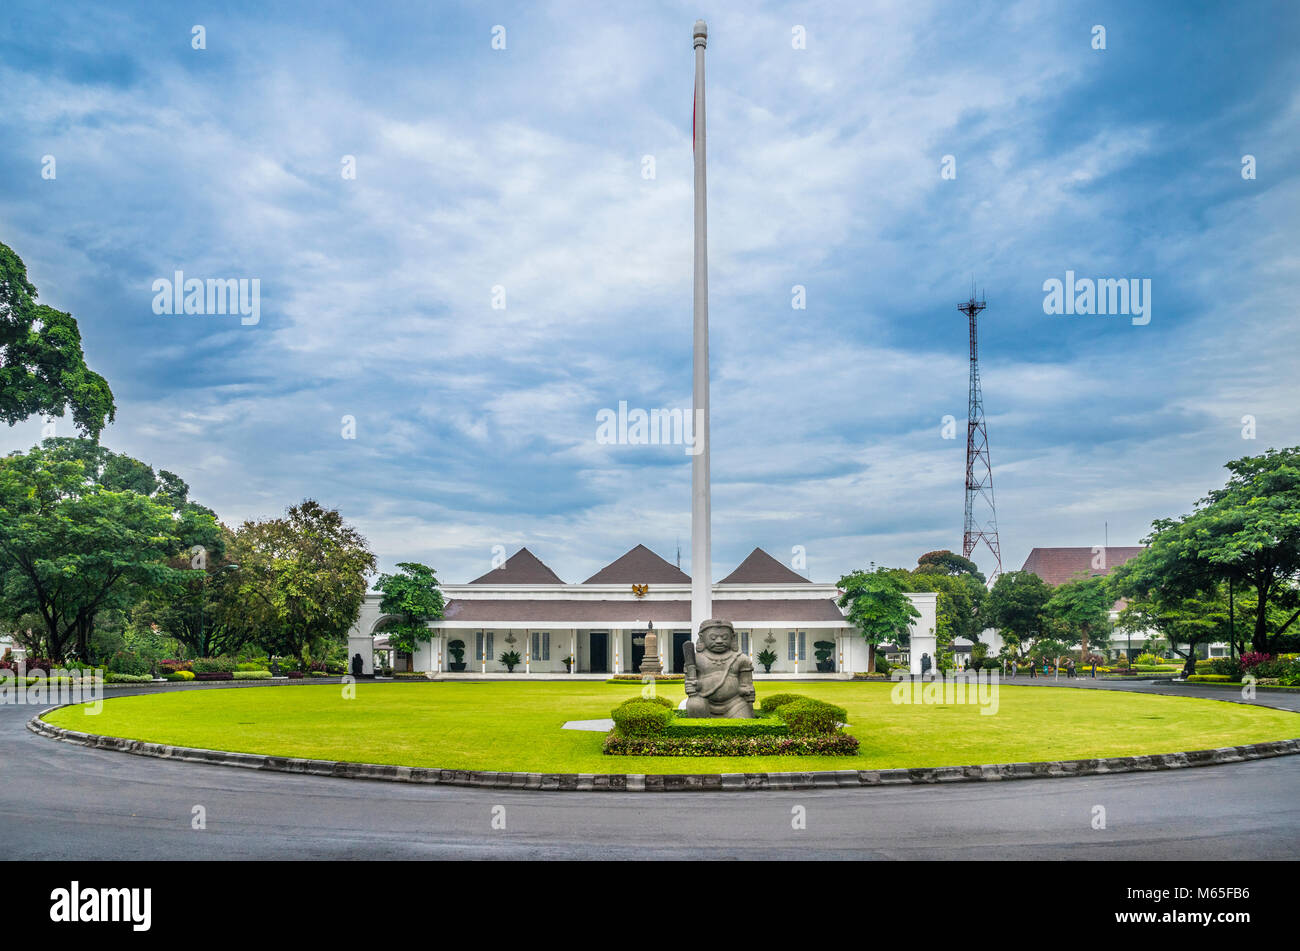 Indonesia, Central Java, Yogyakarta, view of Gedung Agung, originally built as the residence of the Dutch resident, - Stock Image